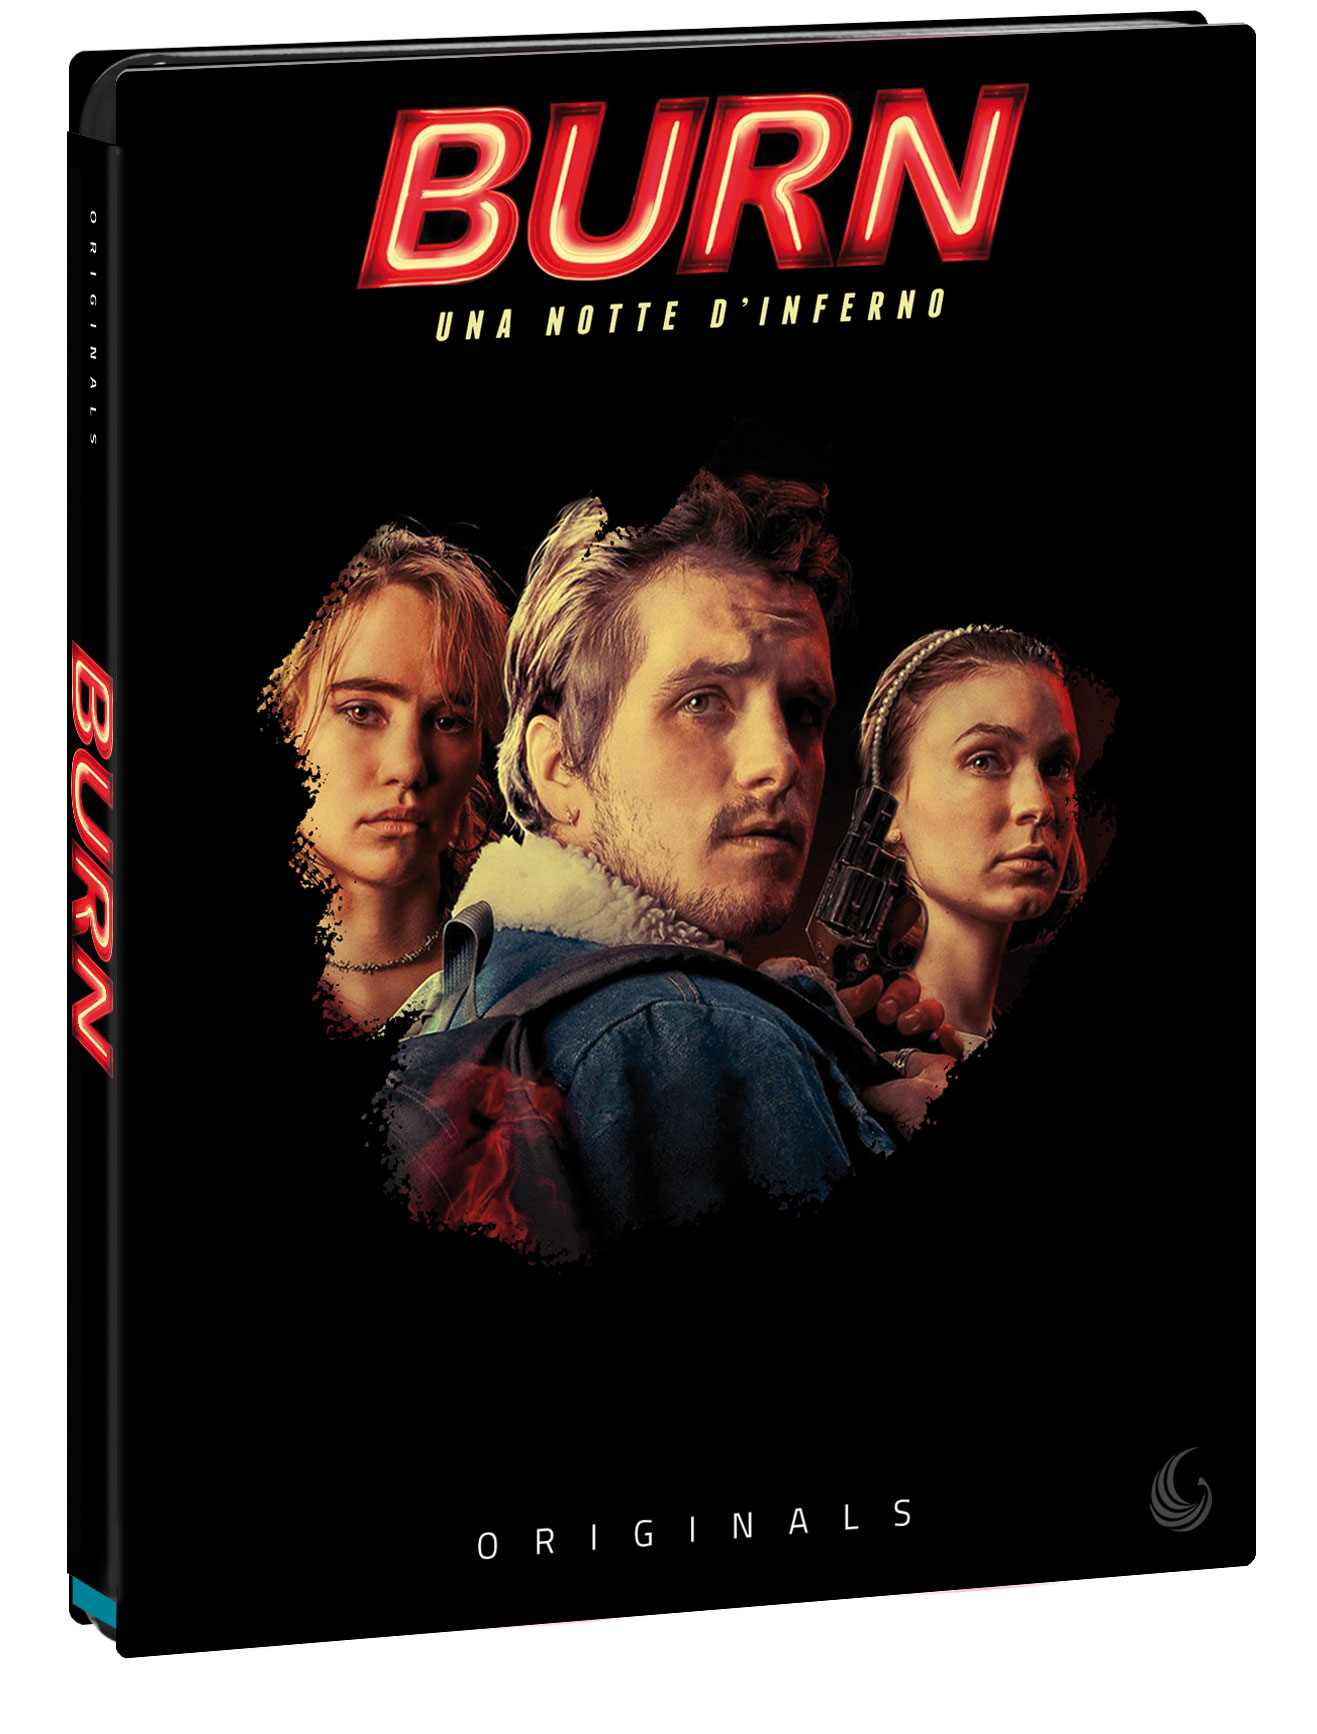 BURN - UNA NOTTE D'INFERNO (BLU-RAY+DVD)